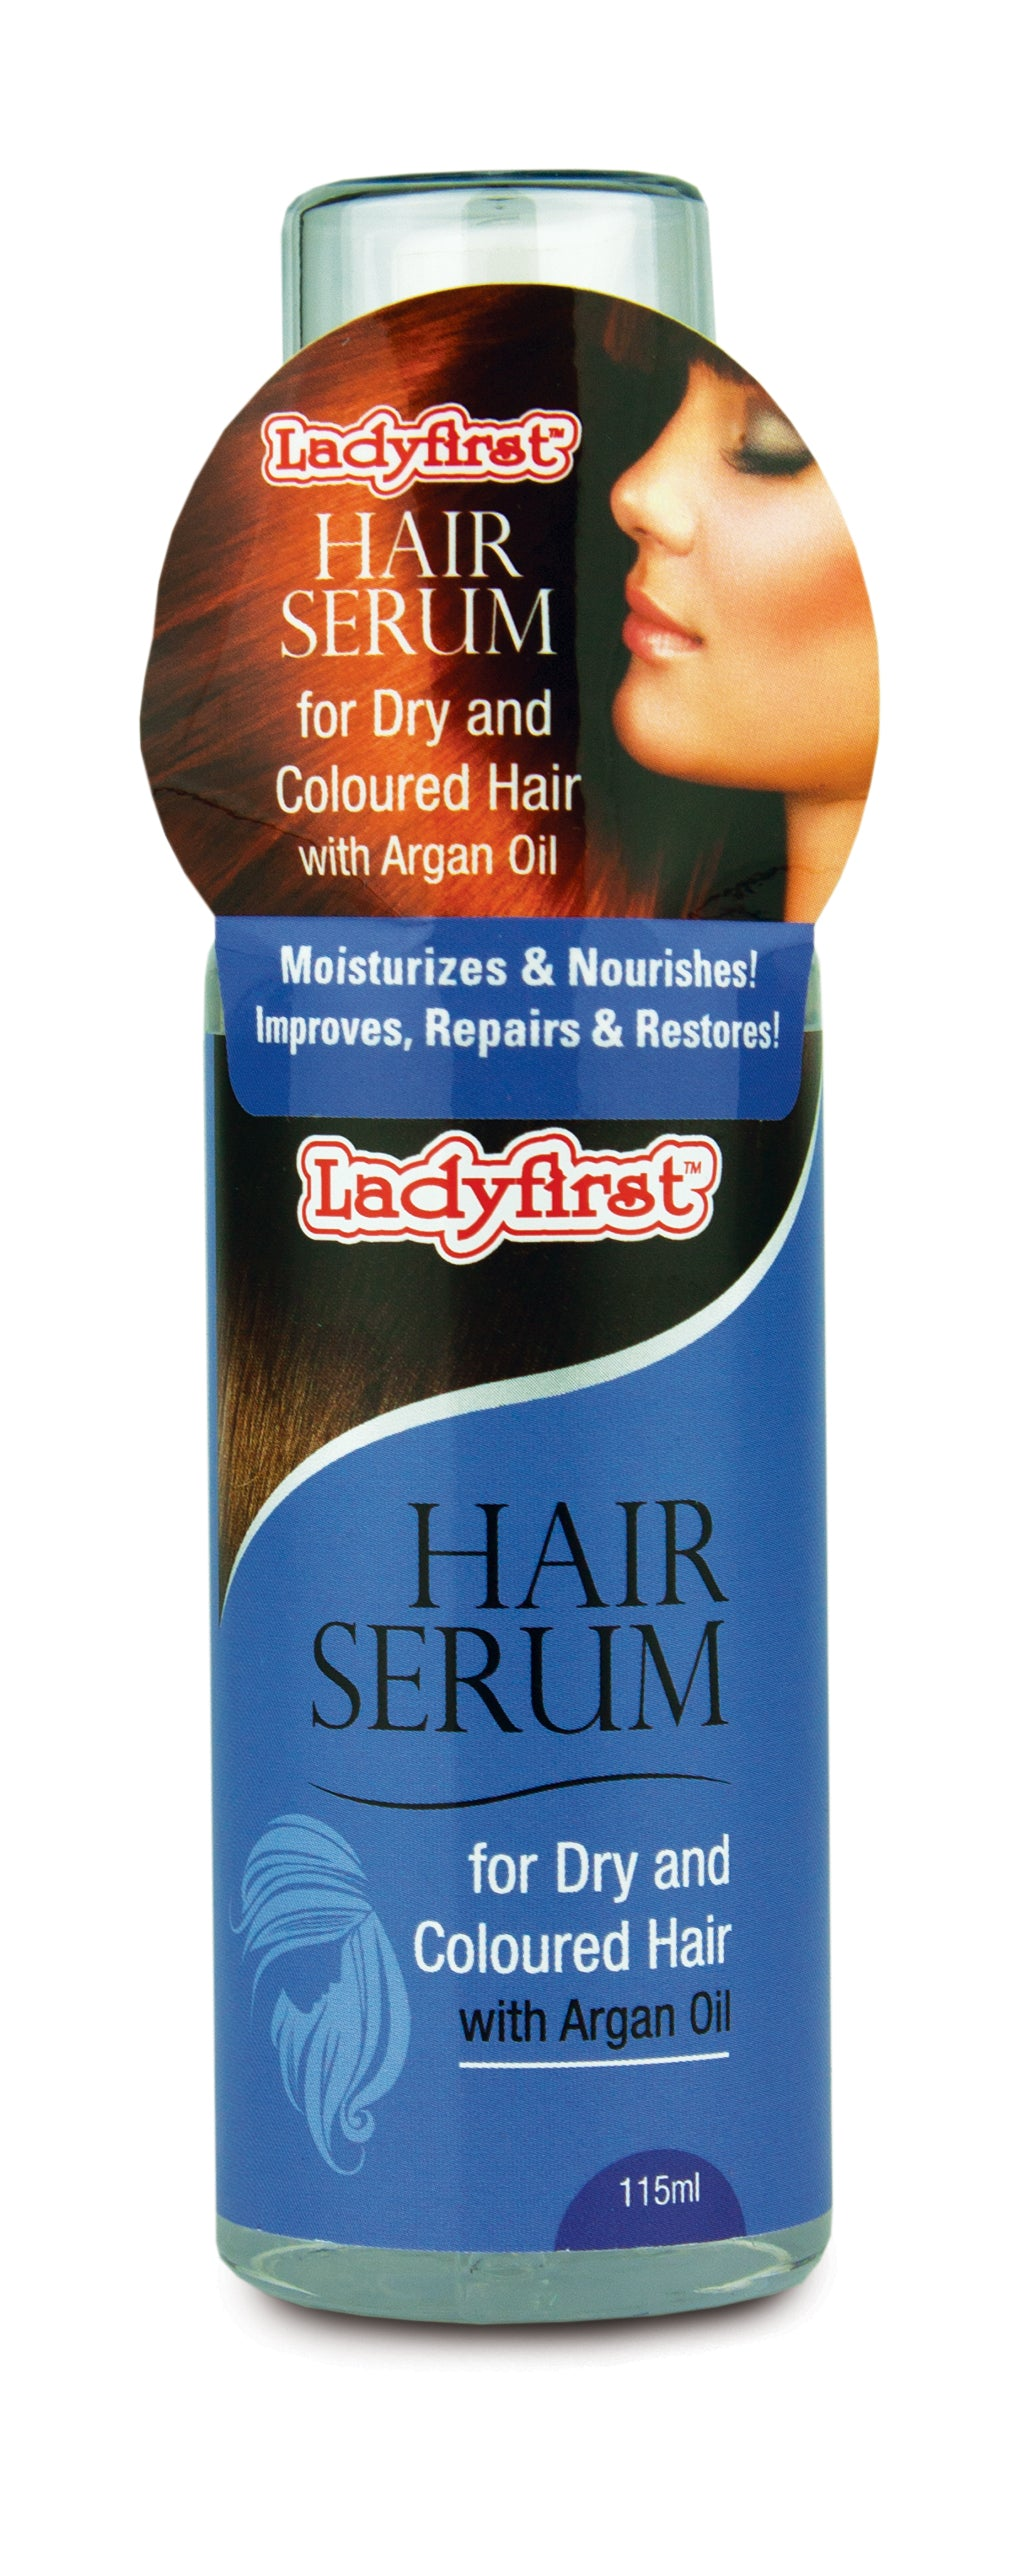 Ladyfirst Hair Serum for Dry Coloured Hair